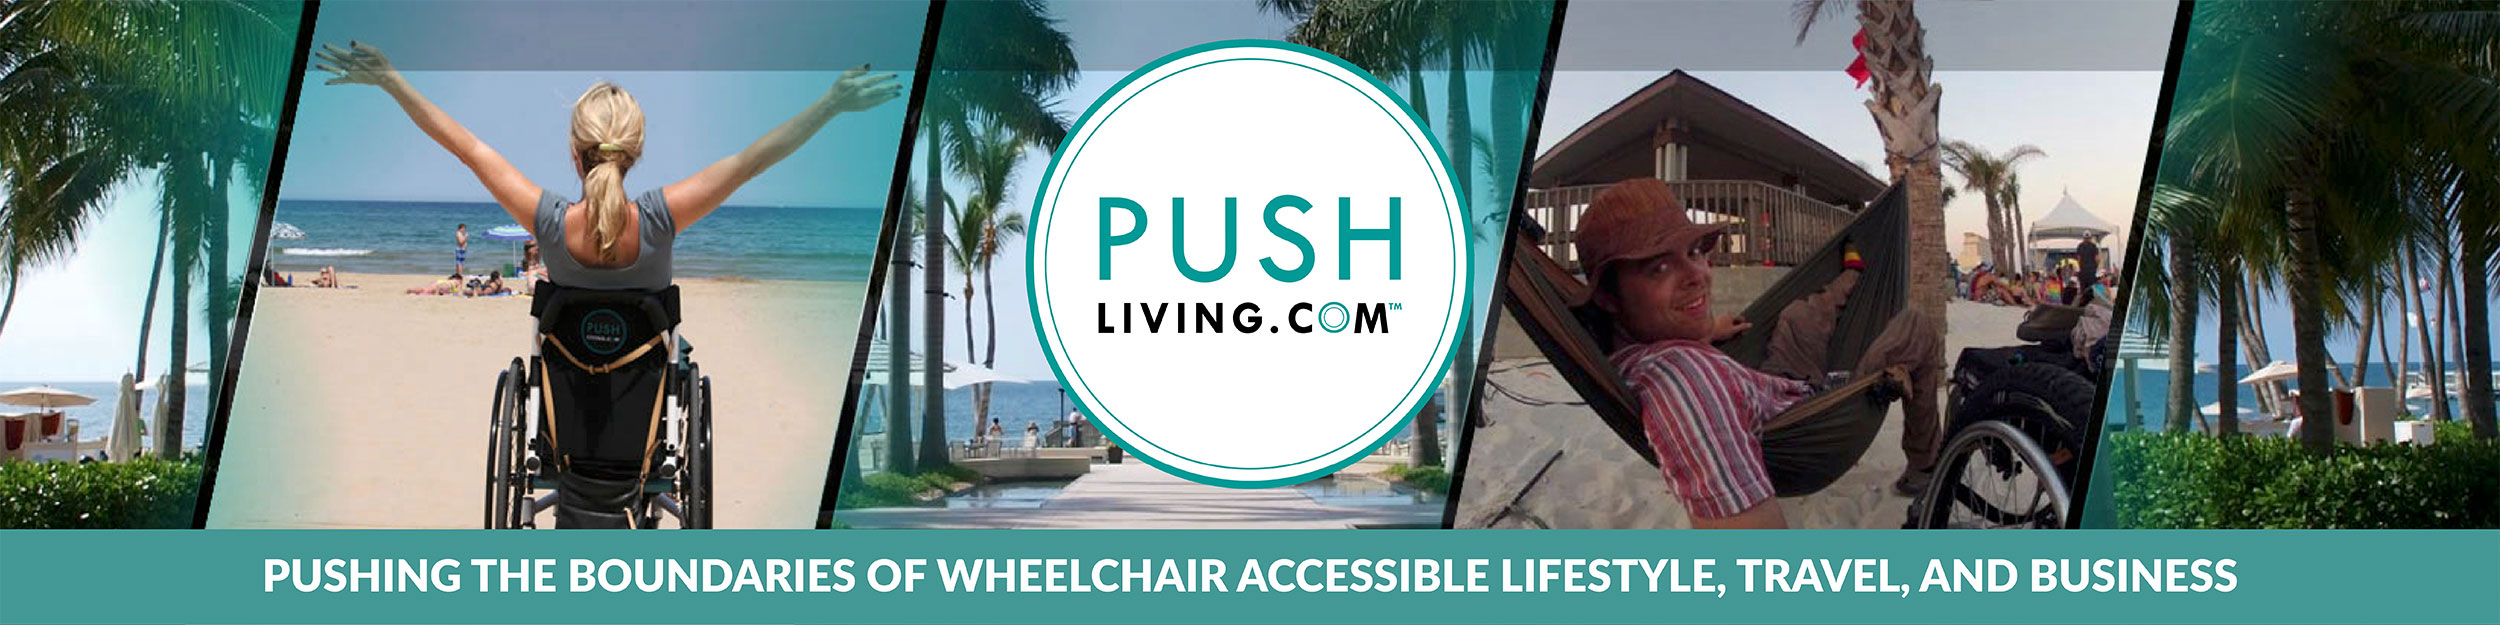 Pushliving Network - Pushing the boundaries of wheelchair accessible lifestyle, travel, and business